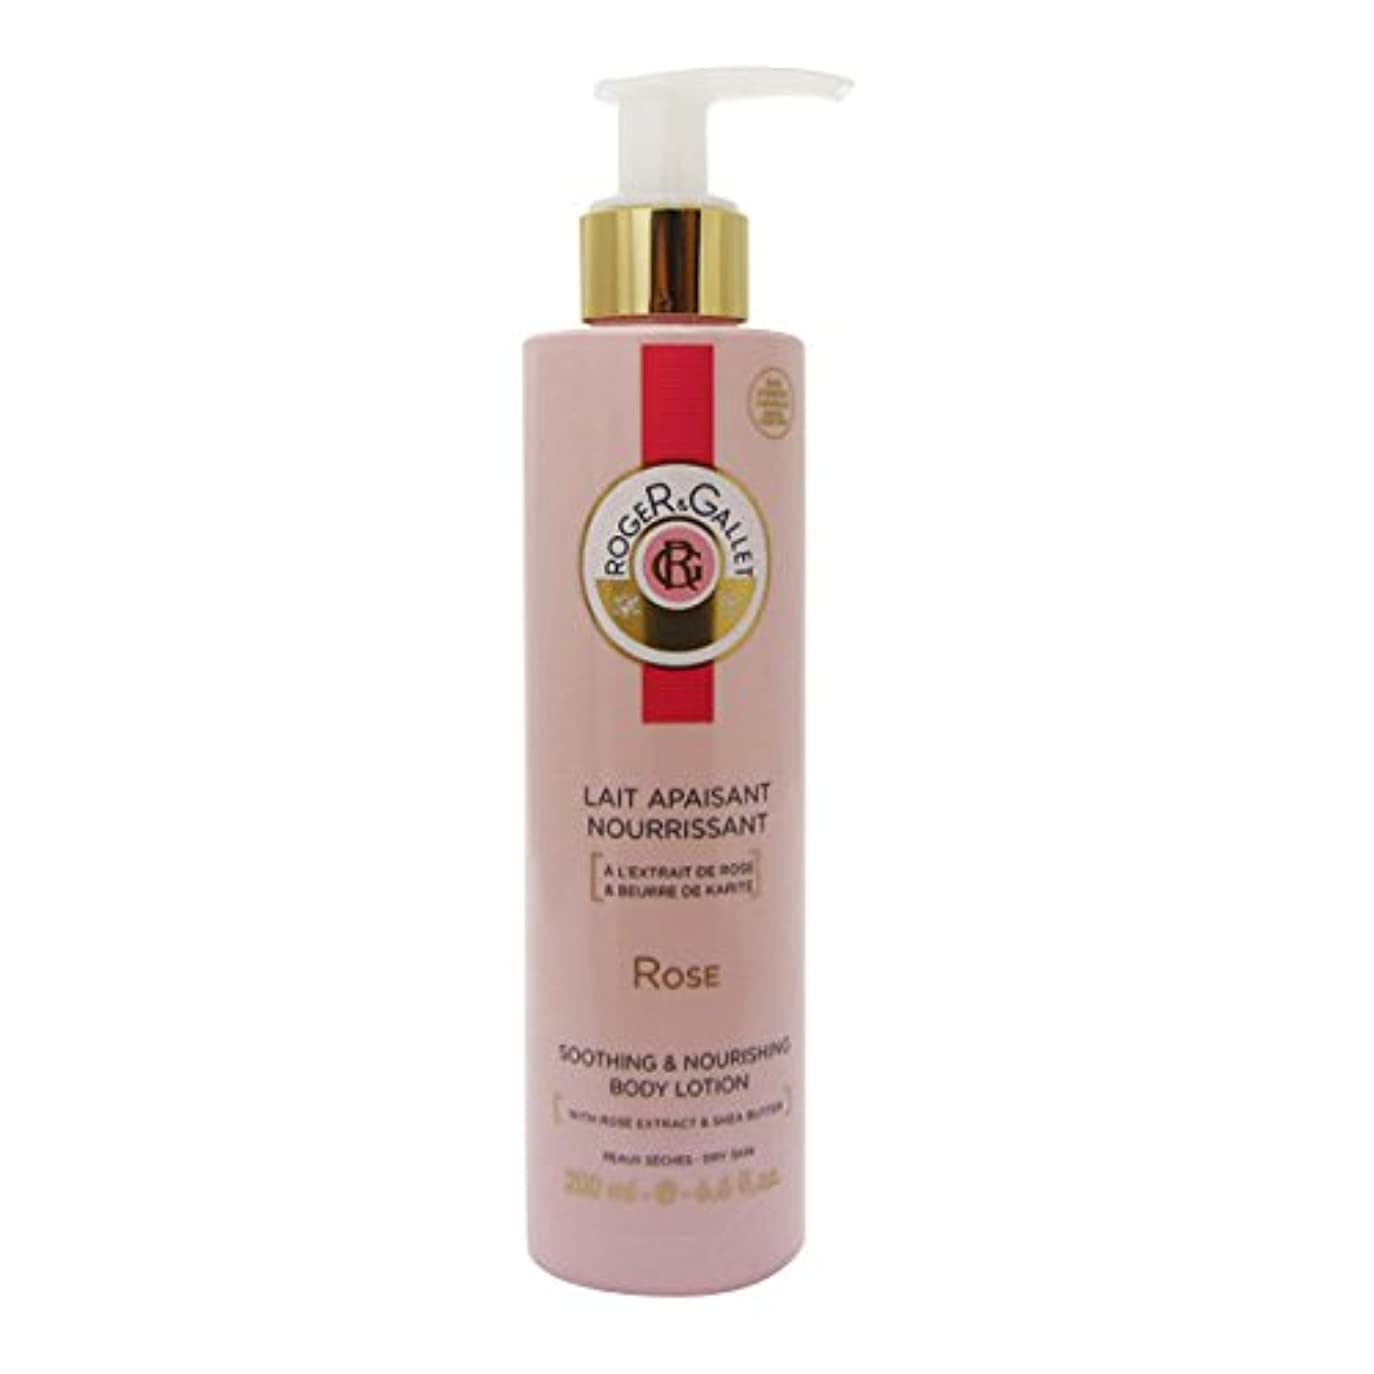 すすり泣き配管ジーンズRoger Gallet Rose Soothing And Nourishing Body Lotion 200ml [並行輸入品]